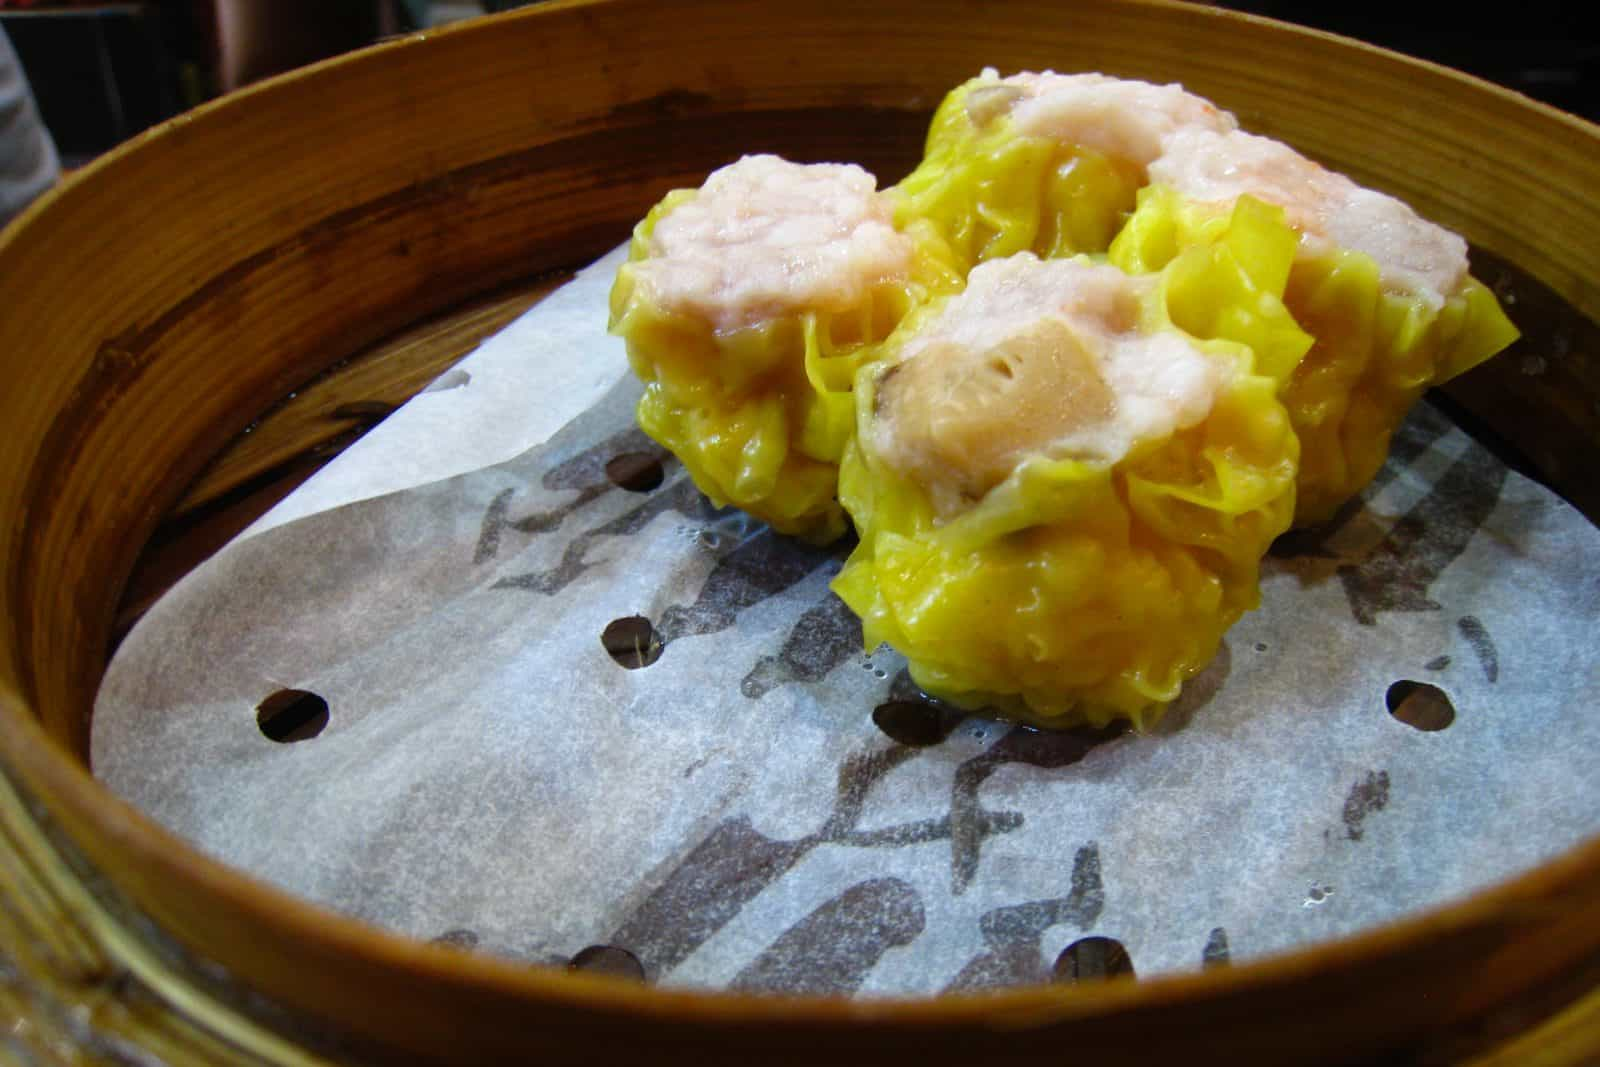 Pork and shrimp dumplings (siu mai)